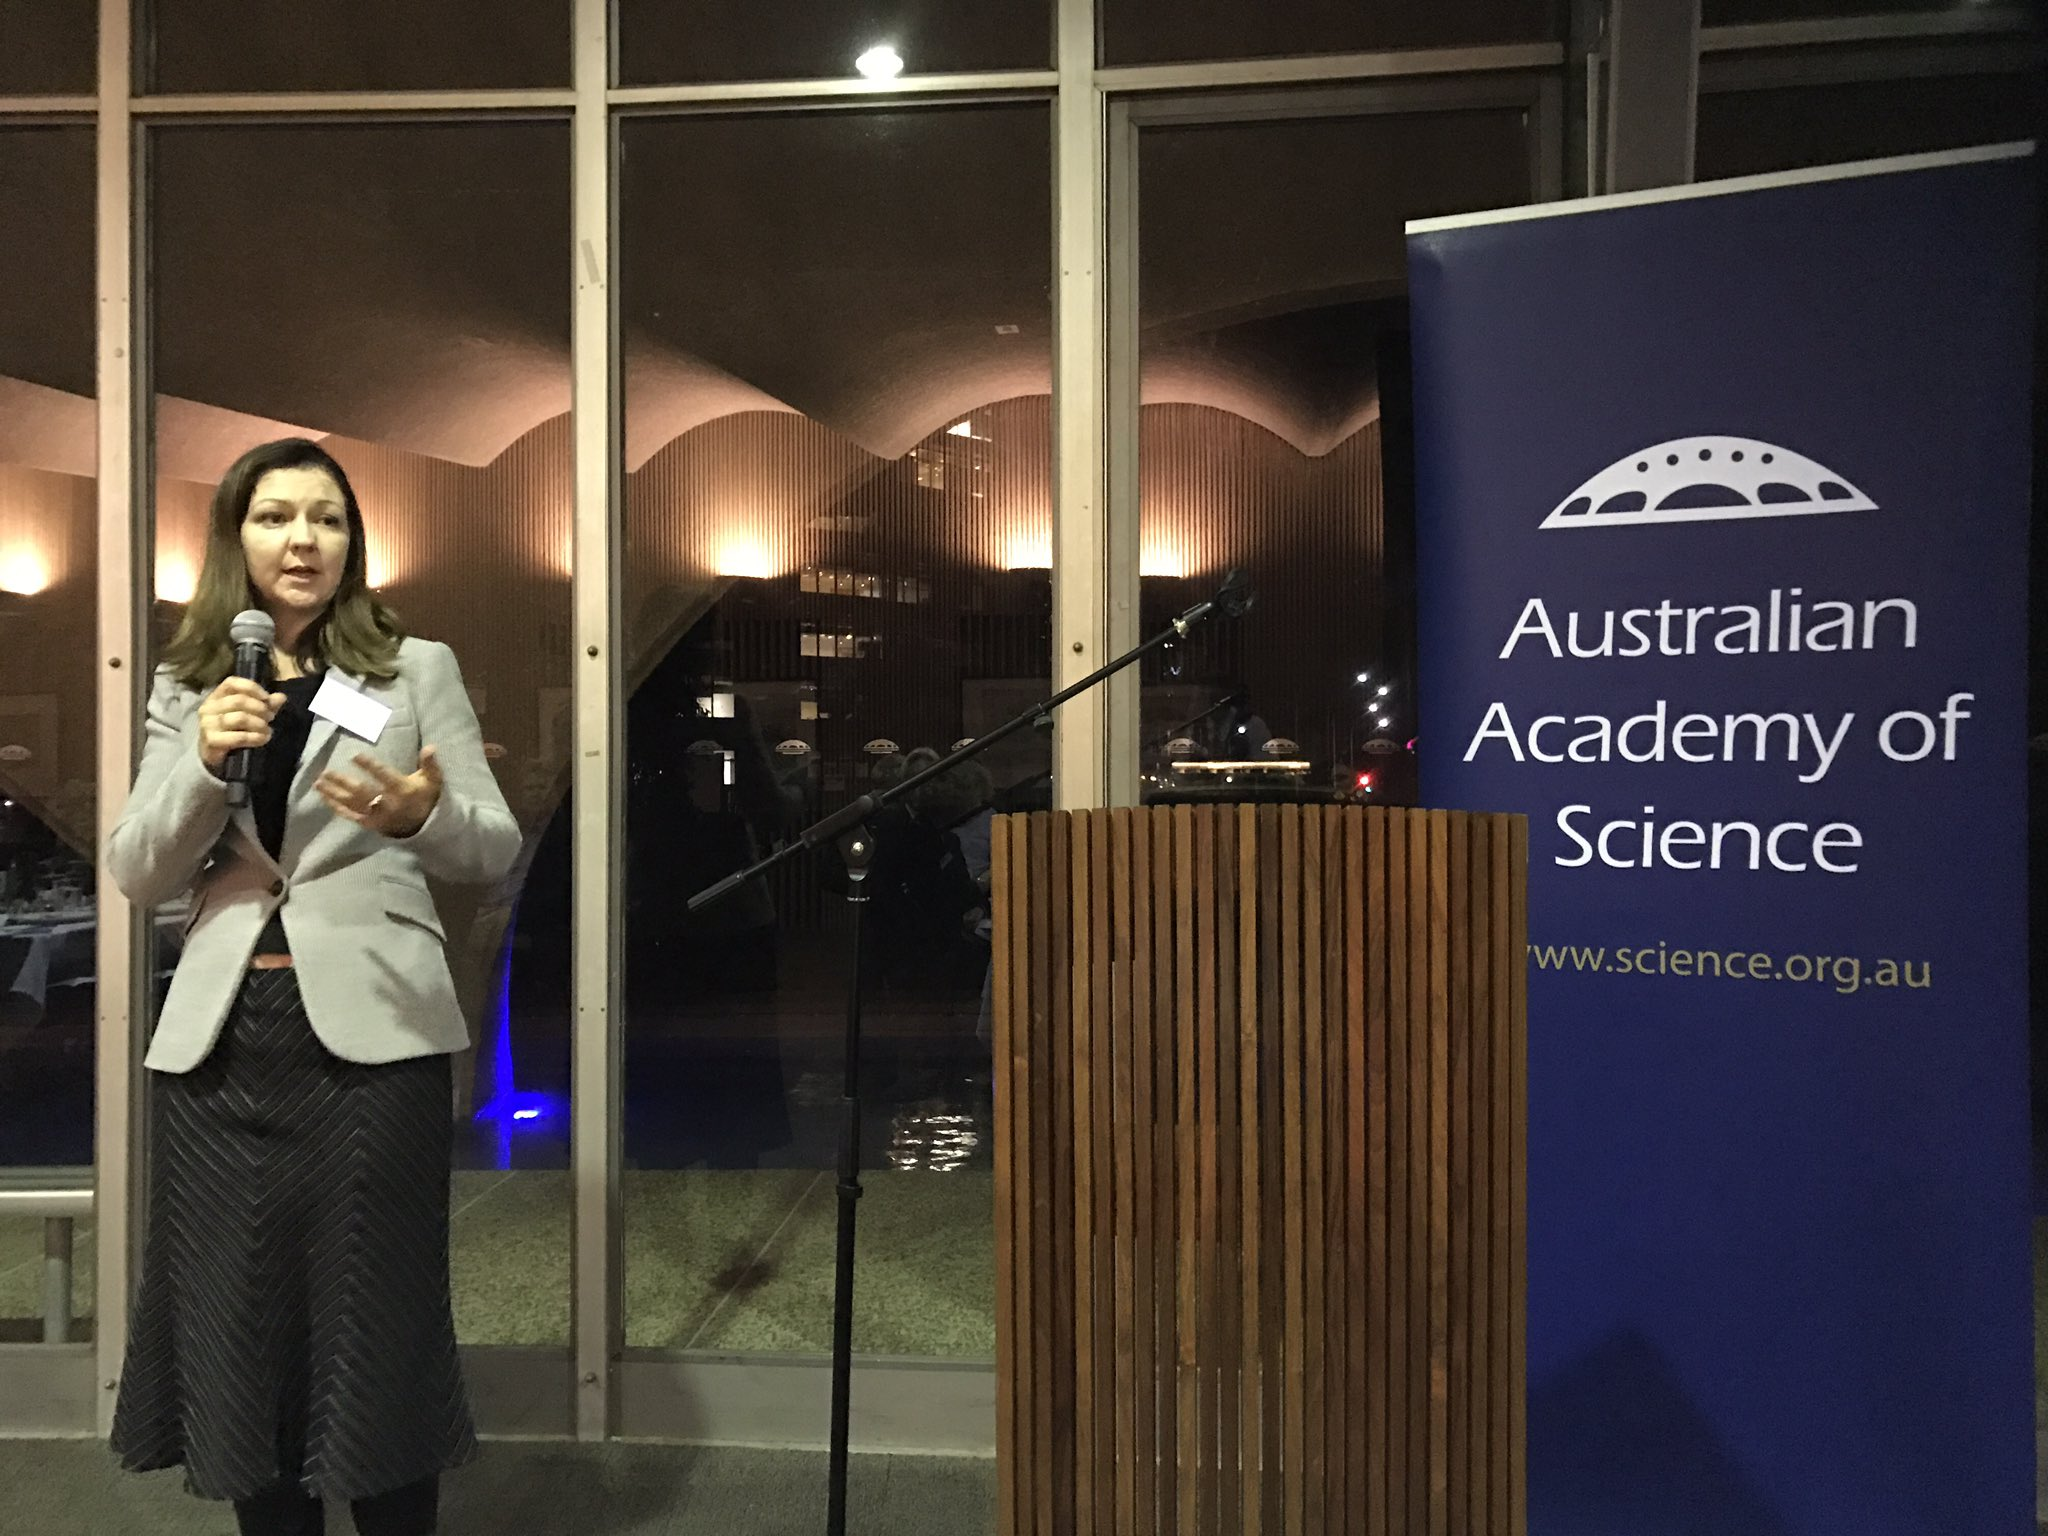 Australian Academy Of Science On Twitter Lisa Kewley Shares Work Of The National Committee For Astronomy Future Innovation Will Benefit Many Other Areas